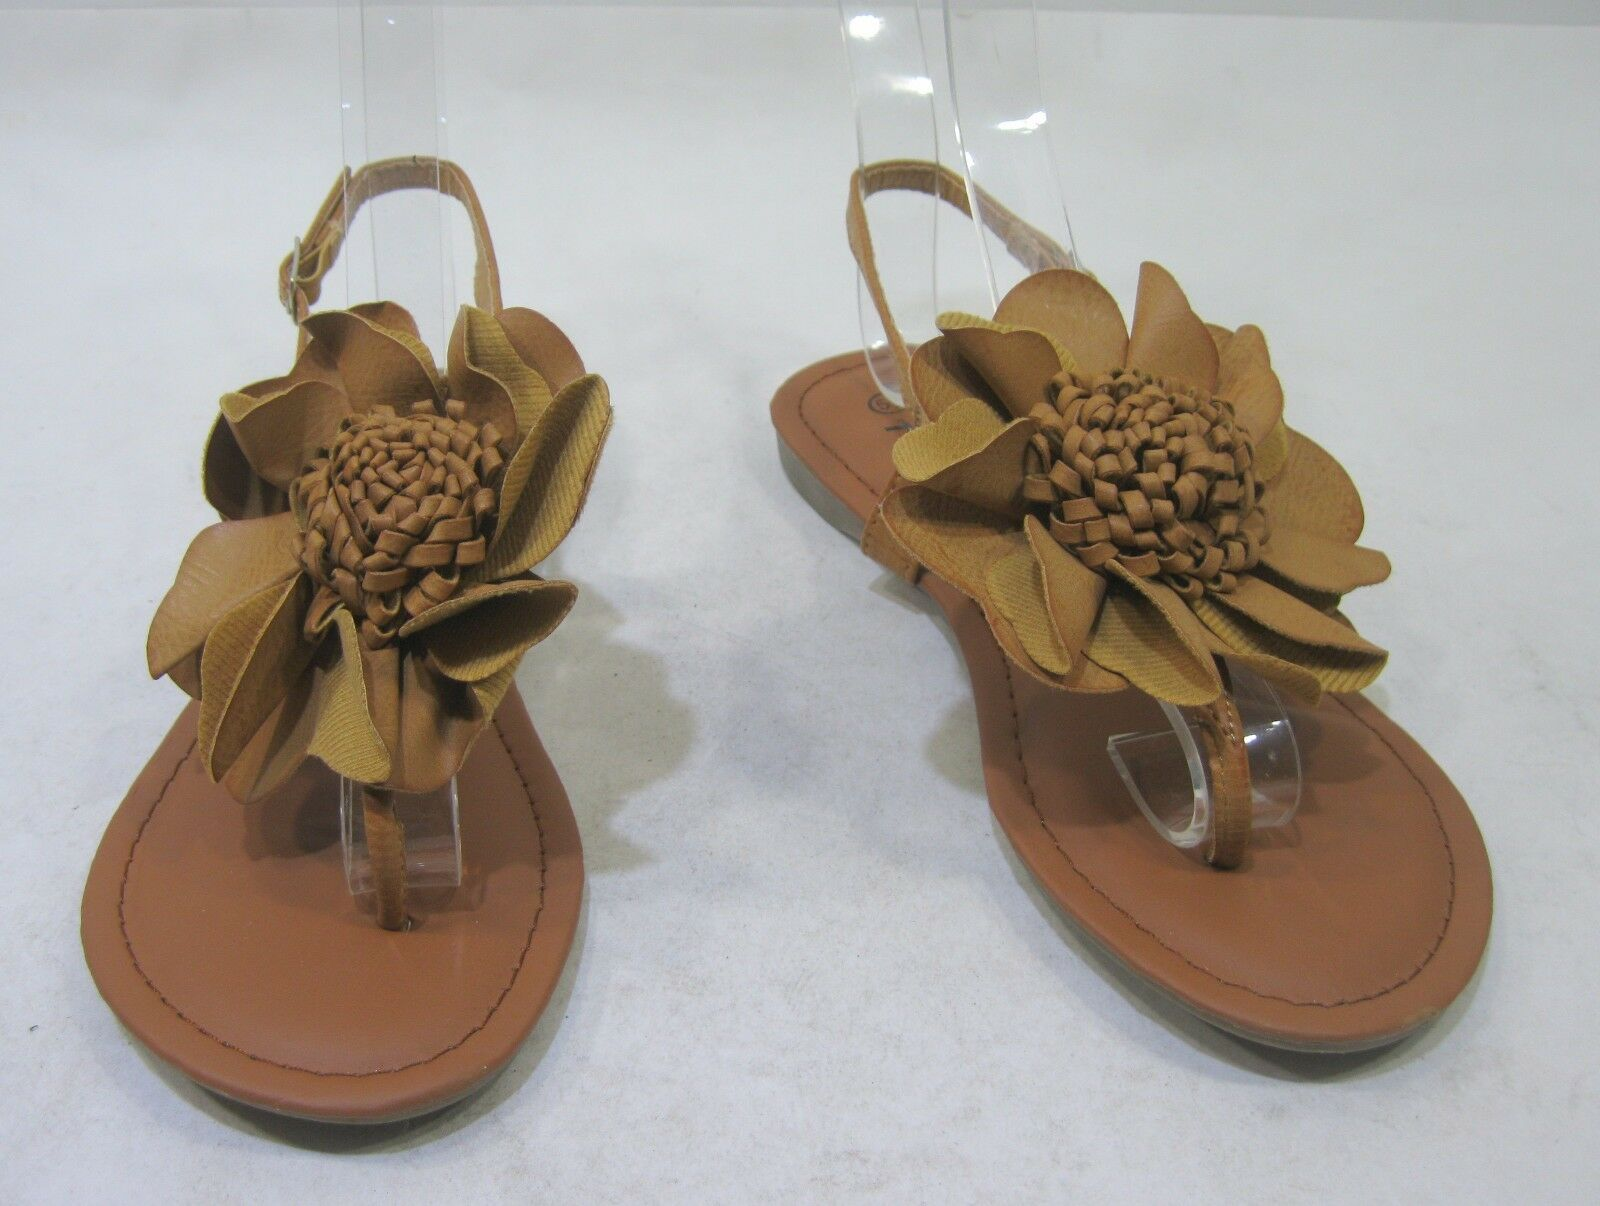 NEW Shoes LADIES Tan Sandals Flower Sexy Summer Cool Sandals Tan Size 5.5 f8394d